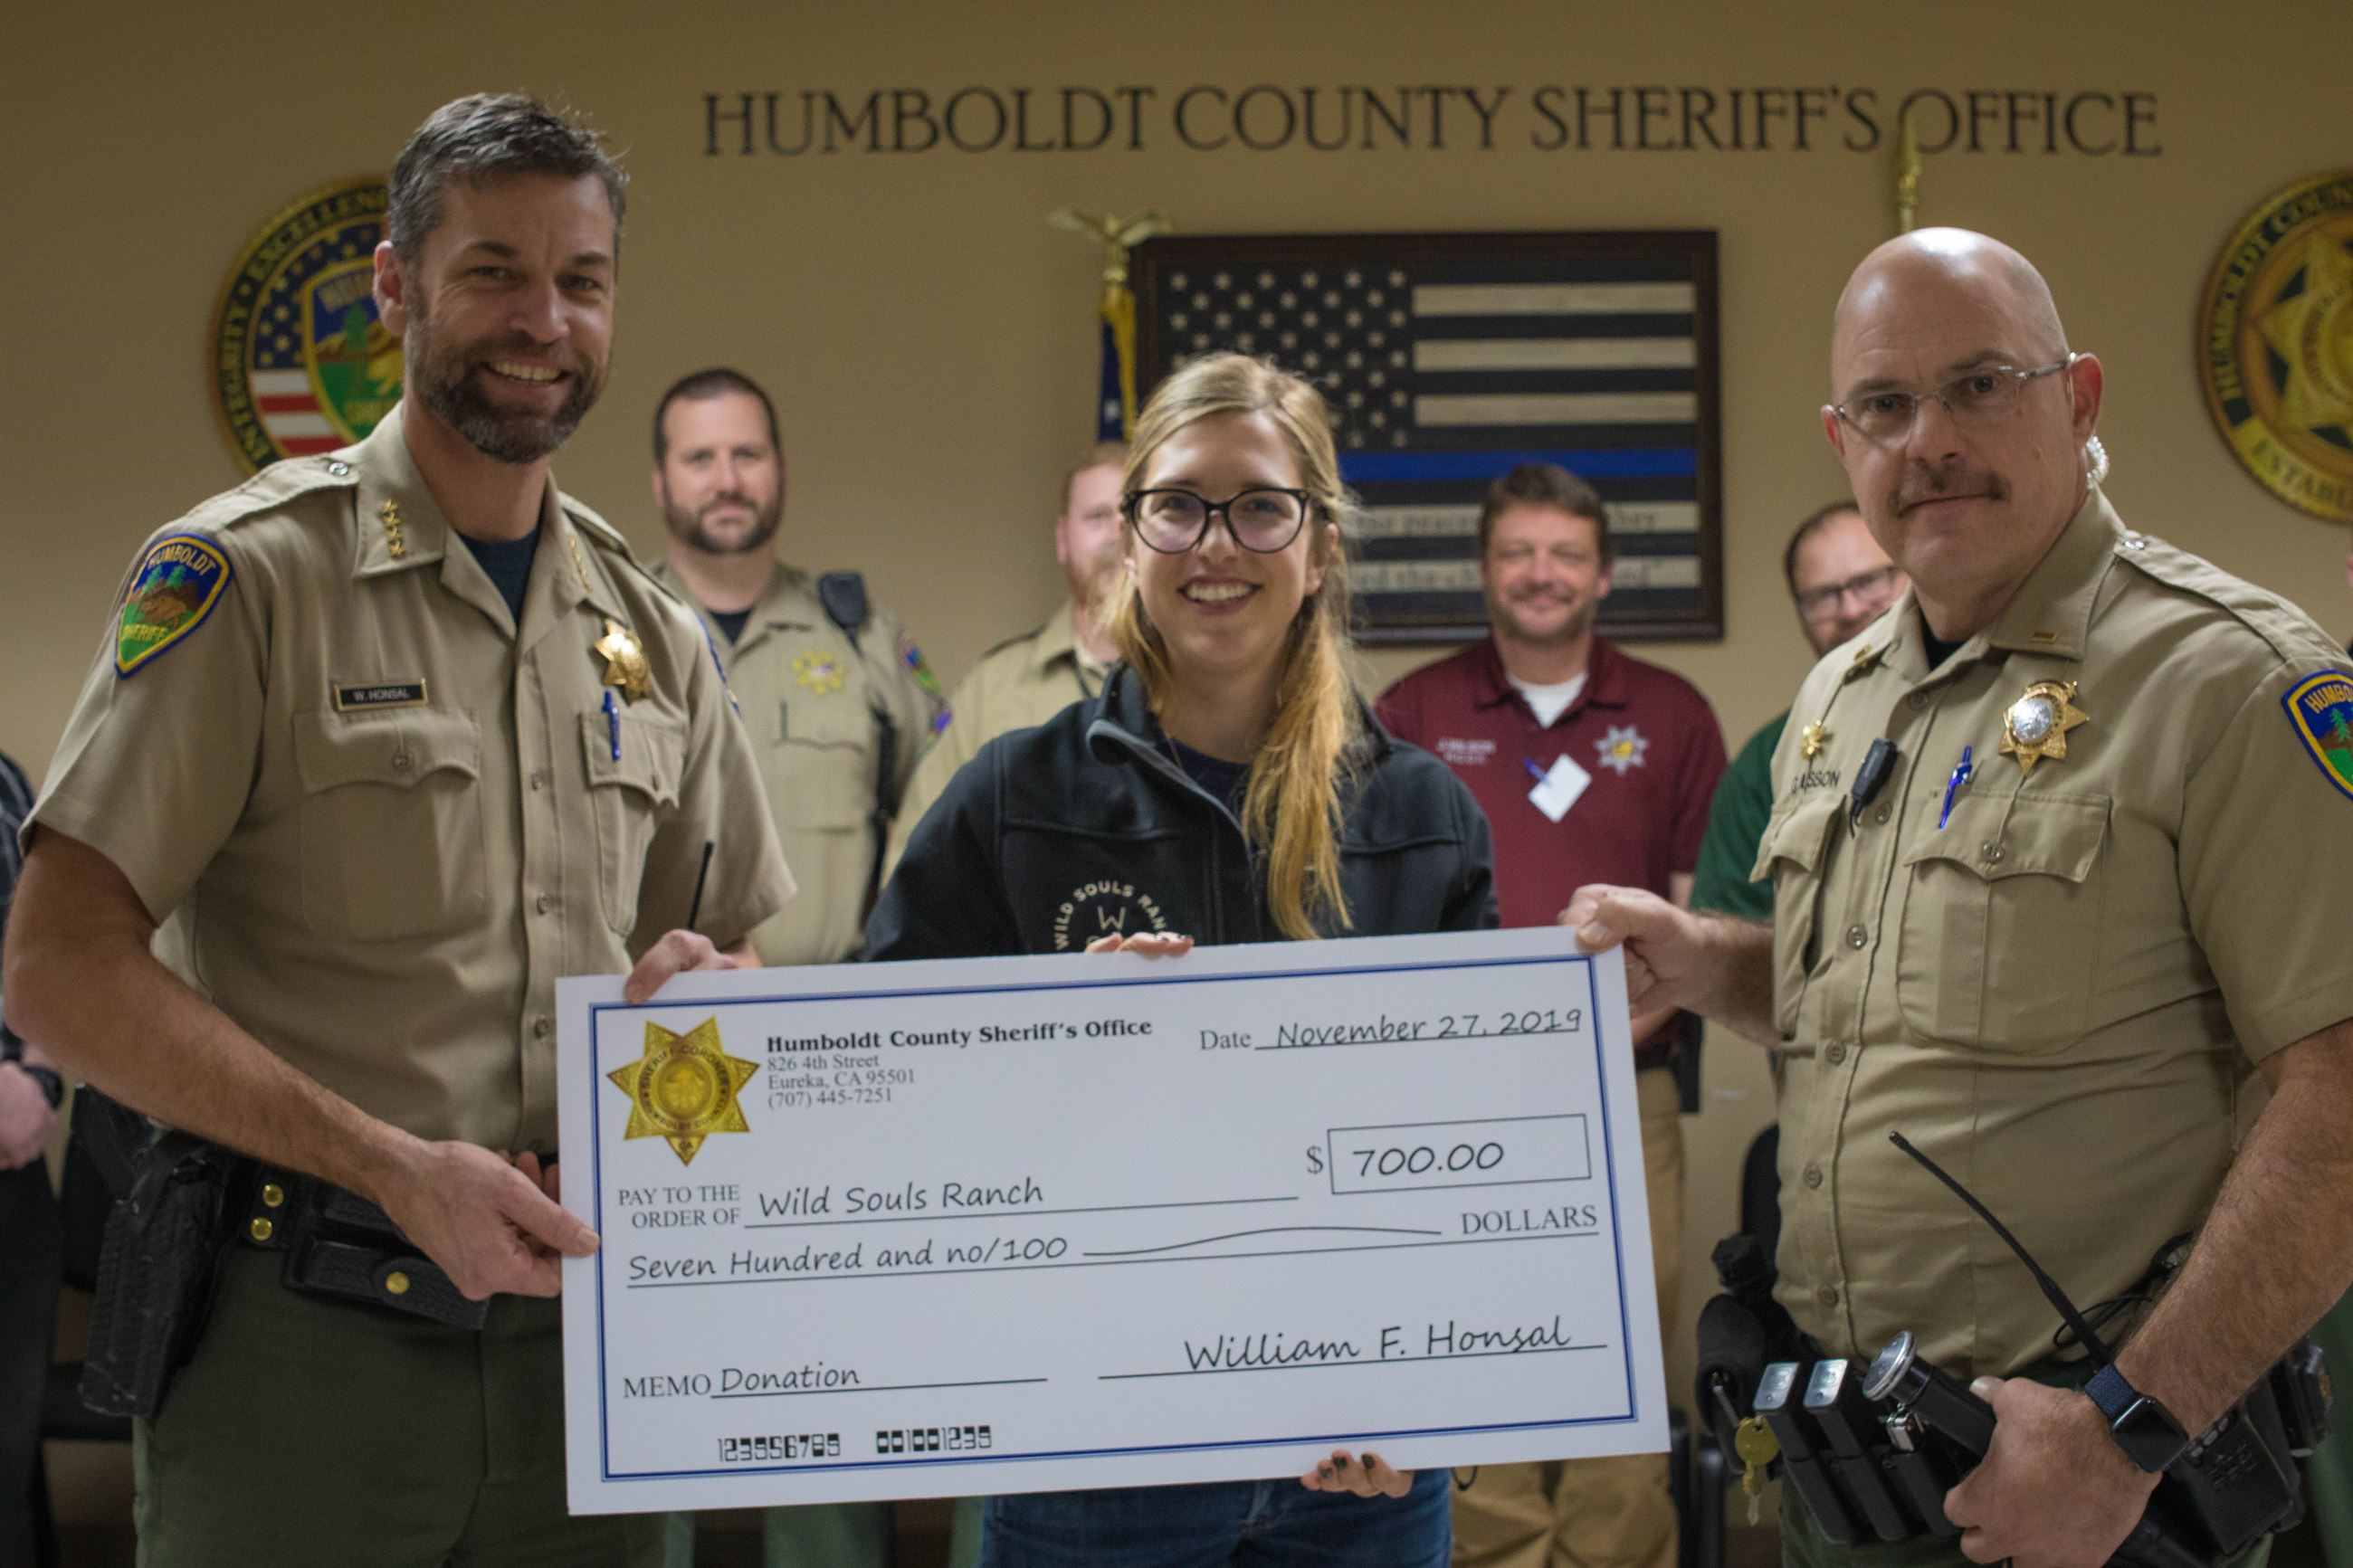 Sheriff Honsal and Lt. Musson present a check to a Wild Souls Ranch representative